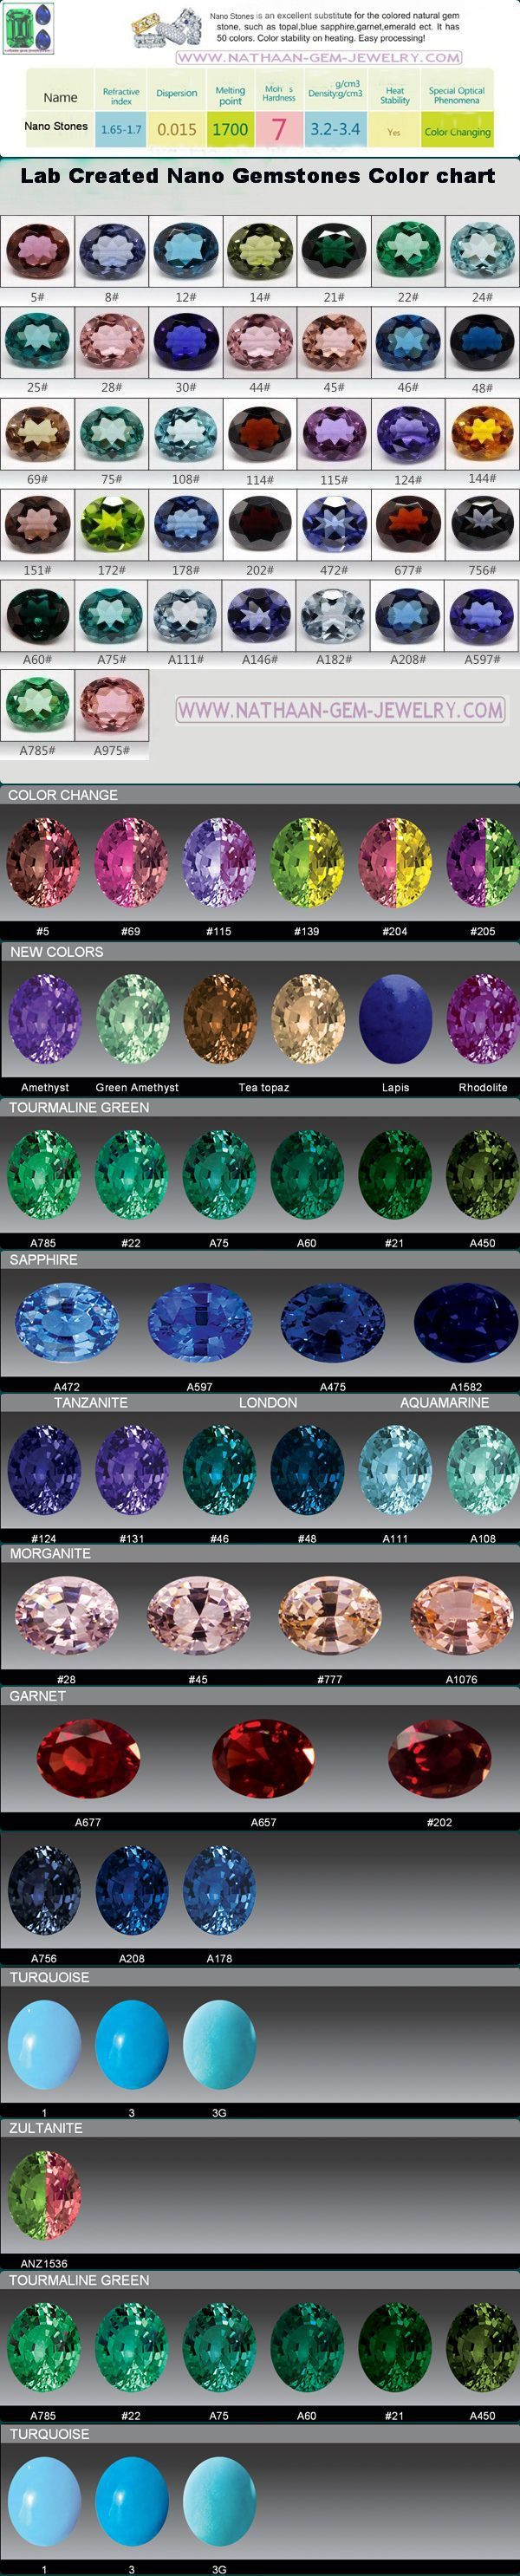 16 best lab created nano crystal emeralds replicas for genuine manufacturers of lab created nano stones for jewelery available in more colors including the color nvjuhfo Images